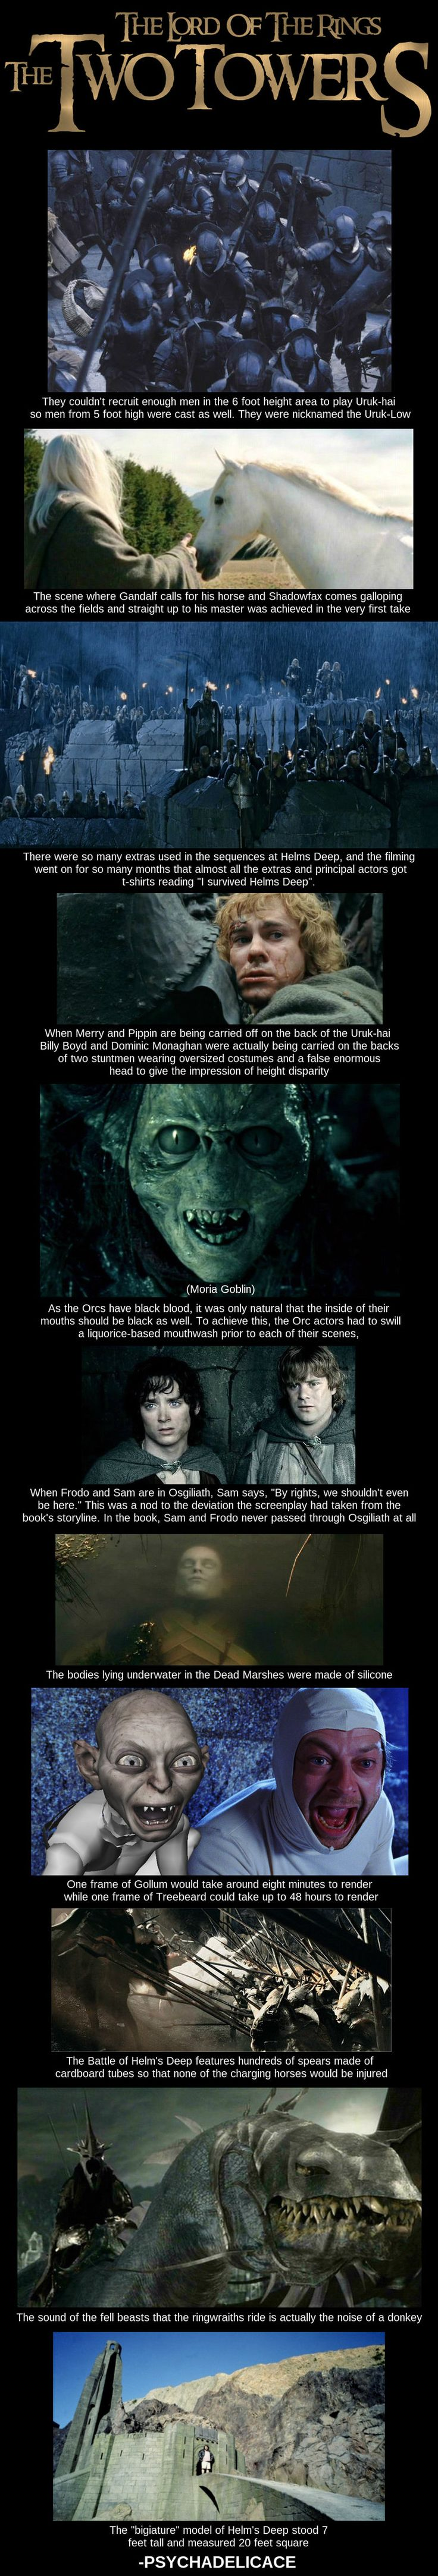 The Two Towers behind the scenes facts.